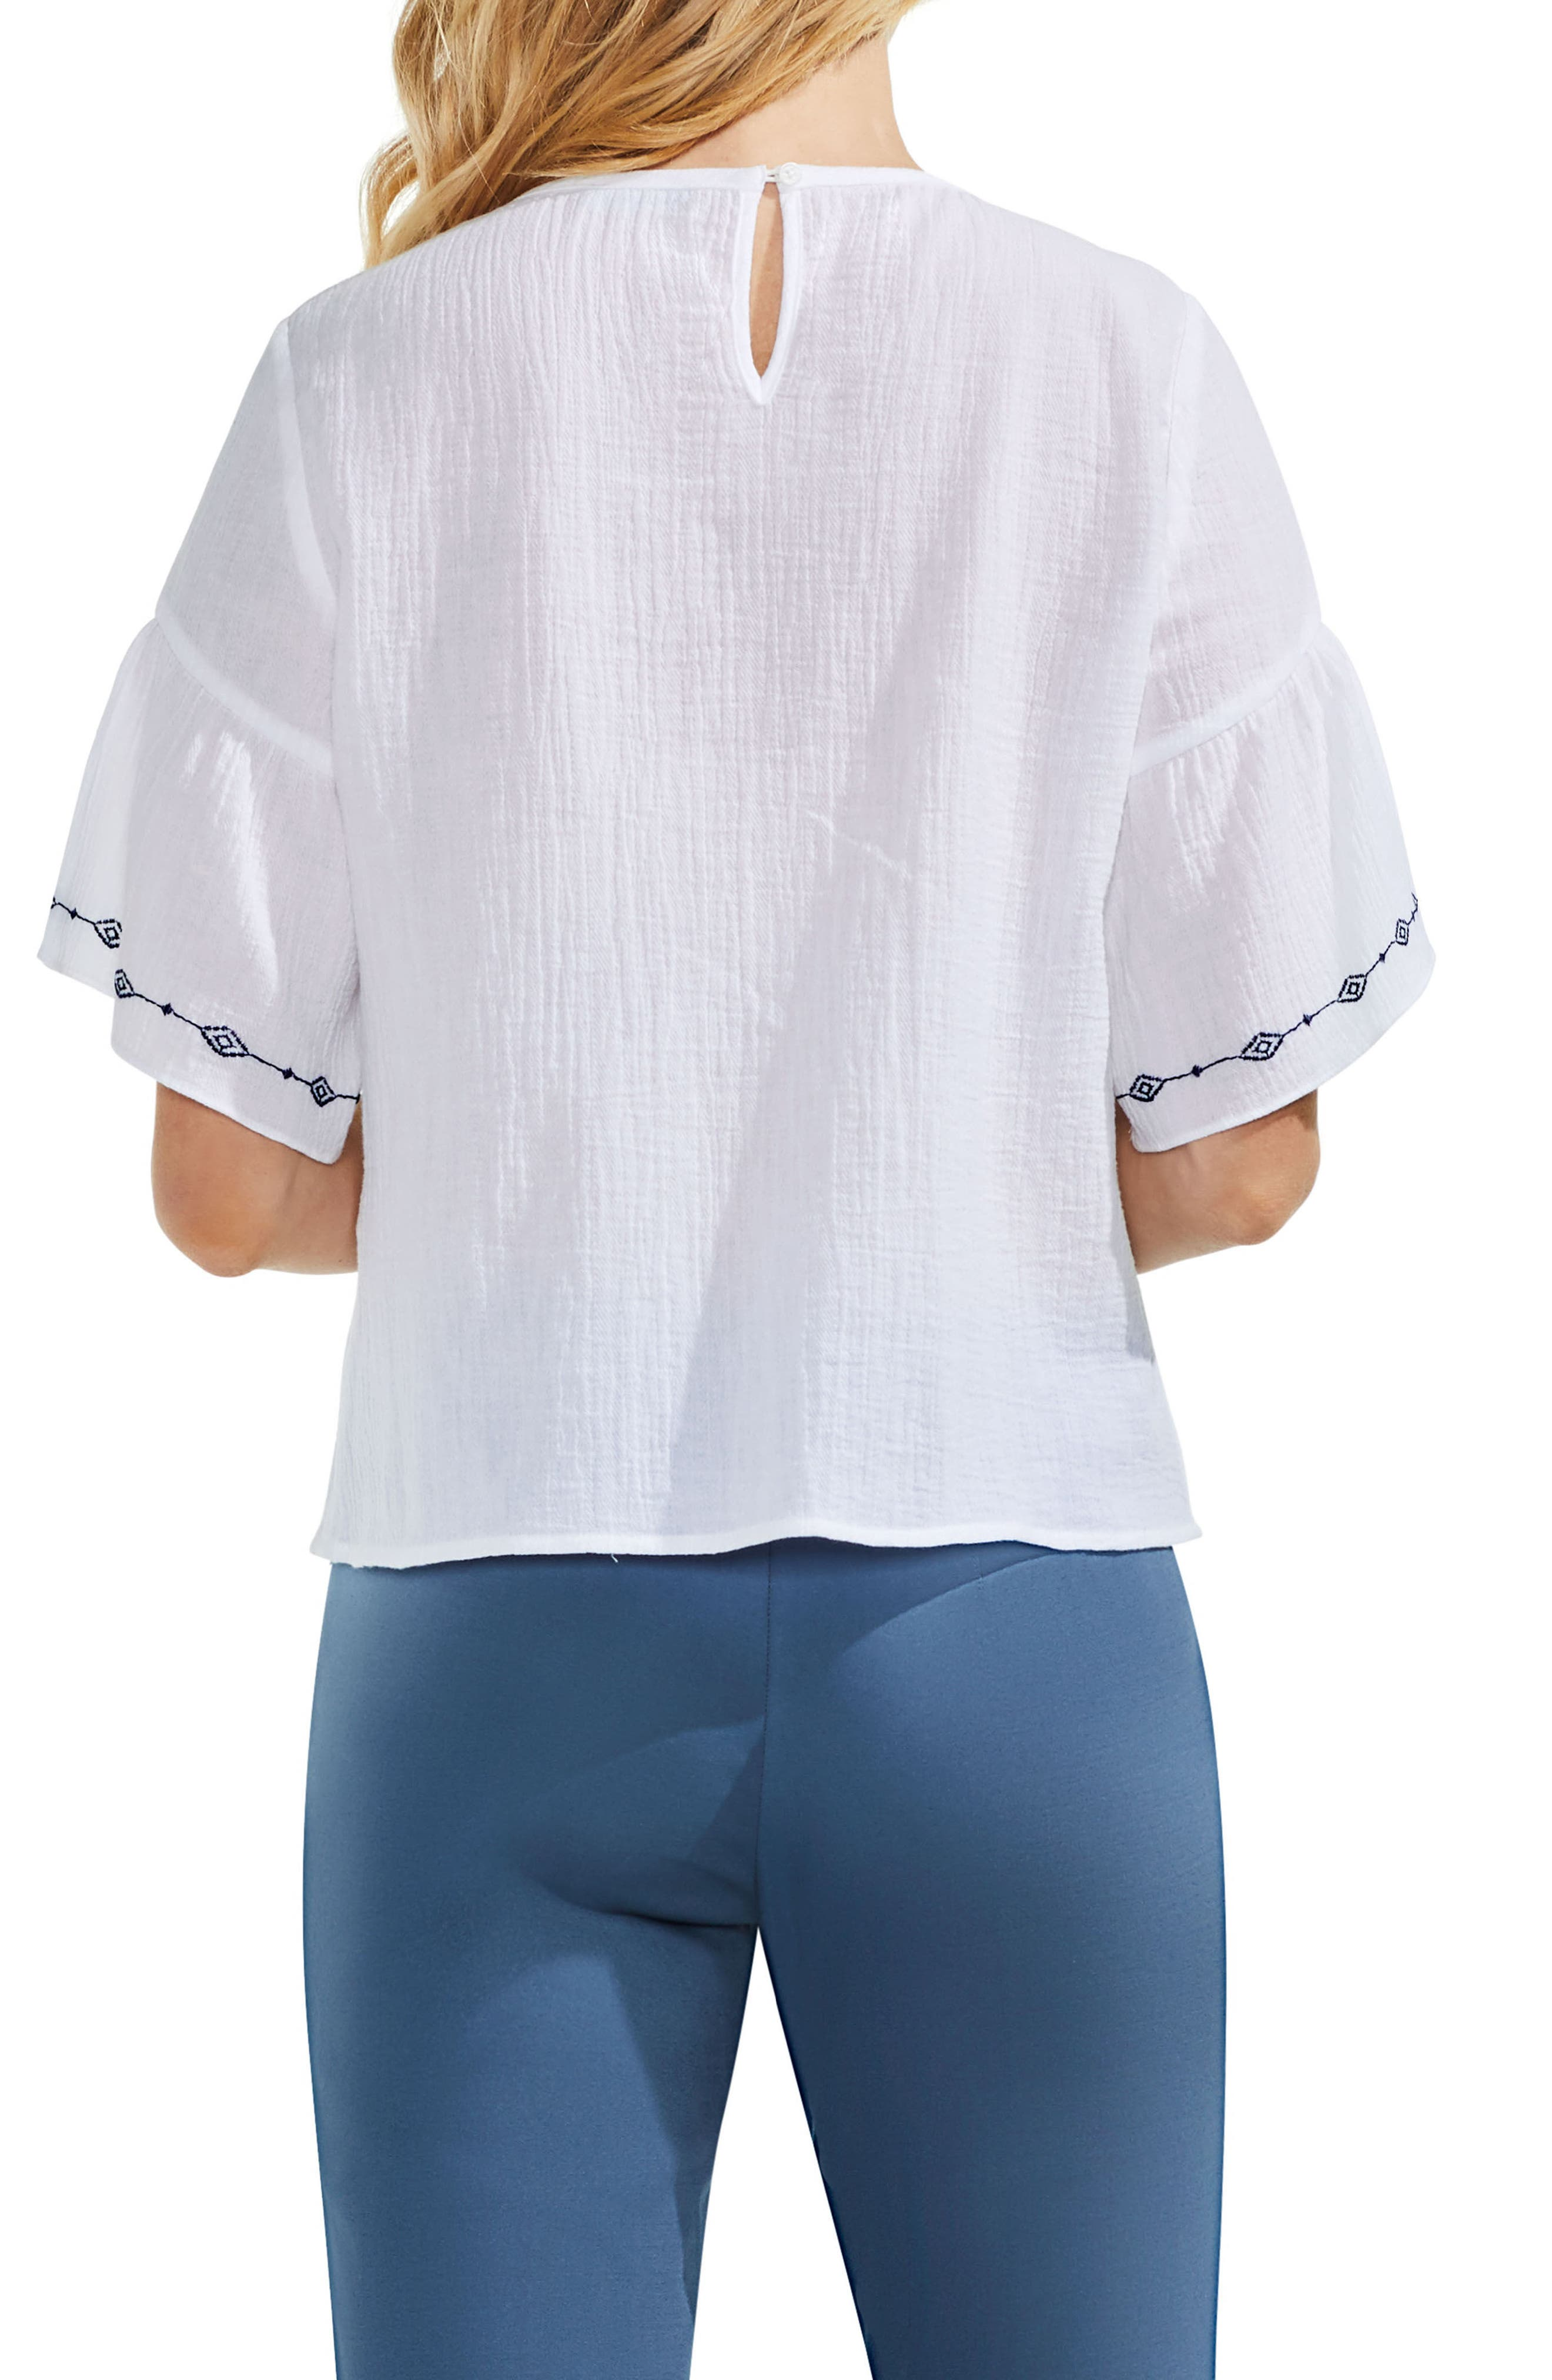 Embroidered Crinkle Cotton Top,                             Alternate thumbnail 2, color,                             145